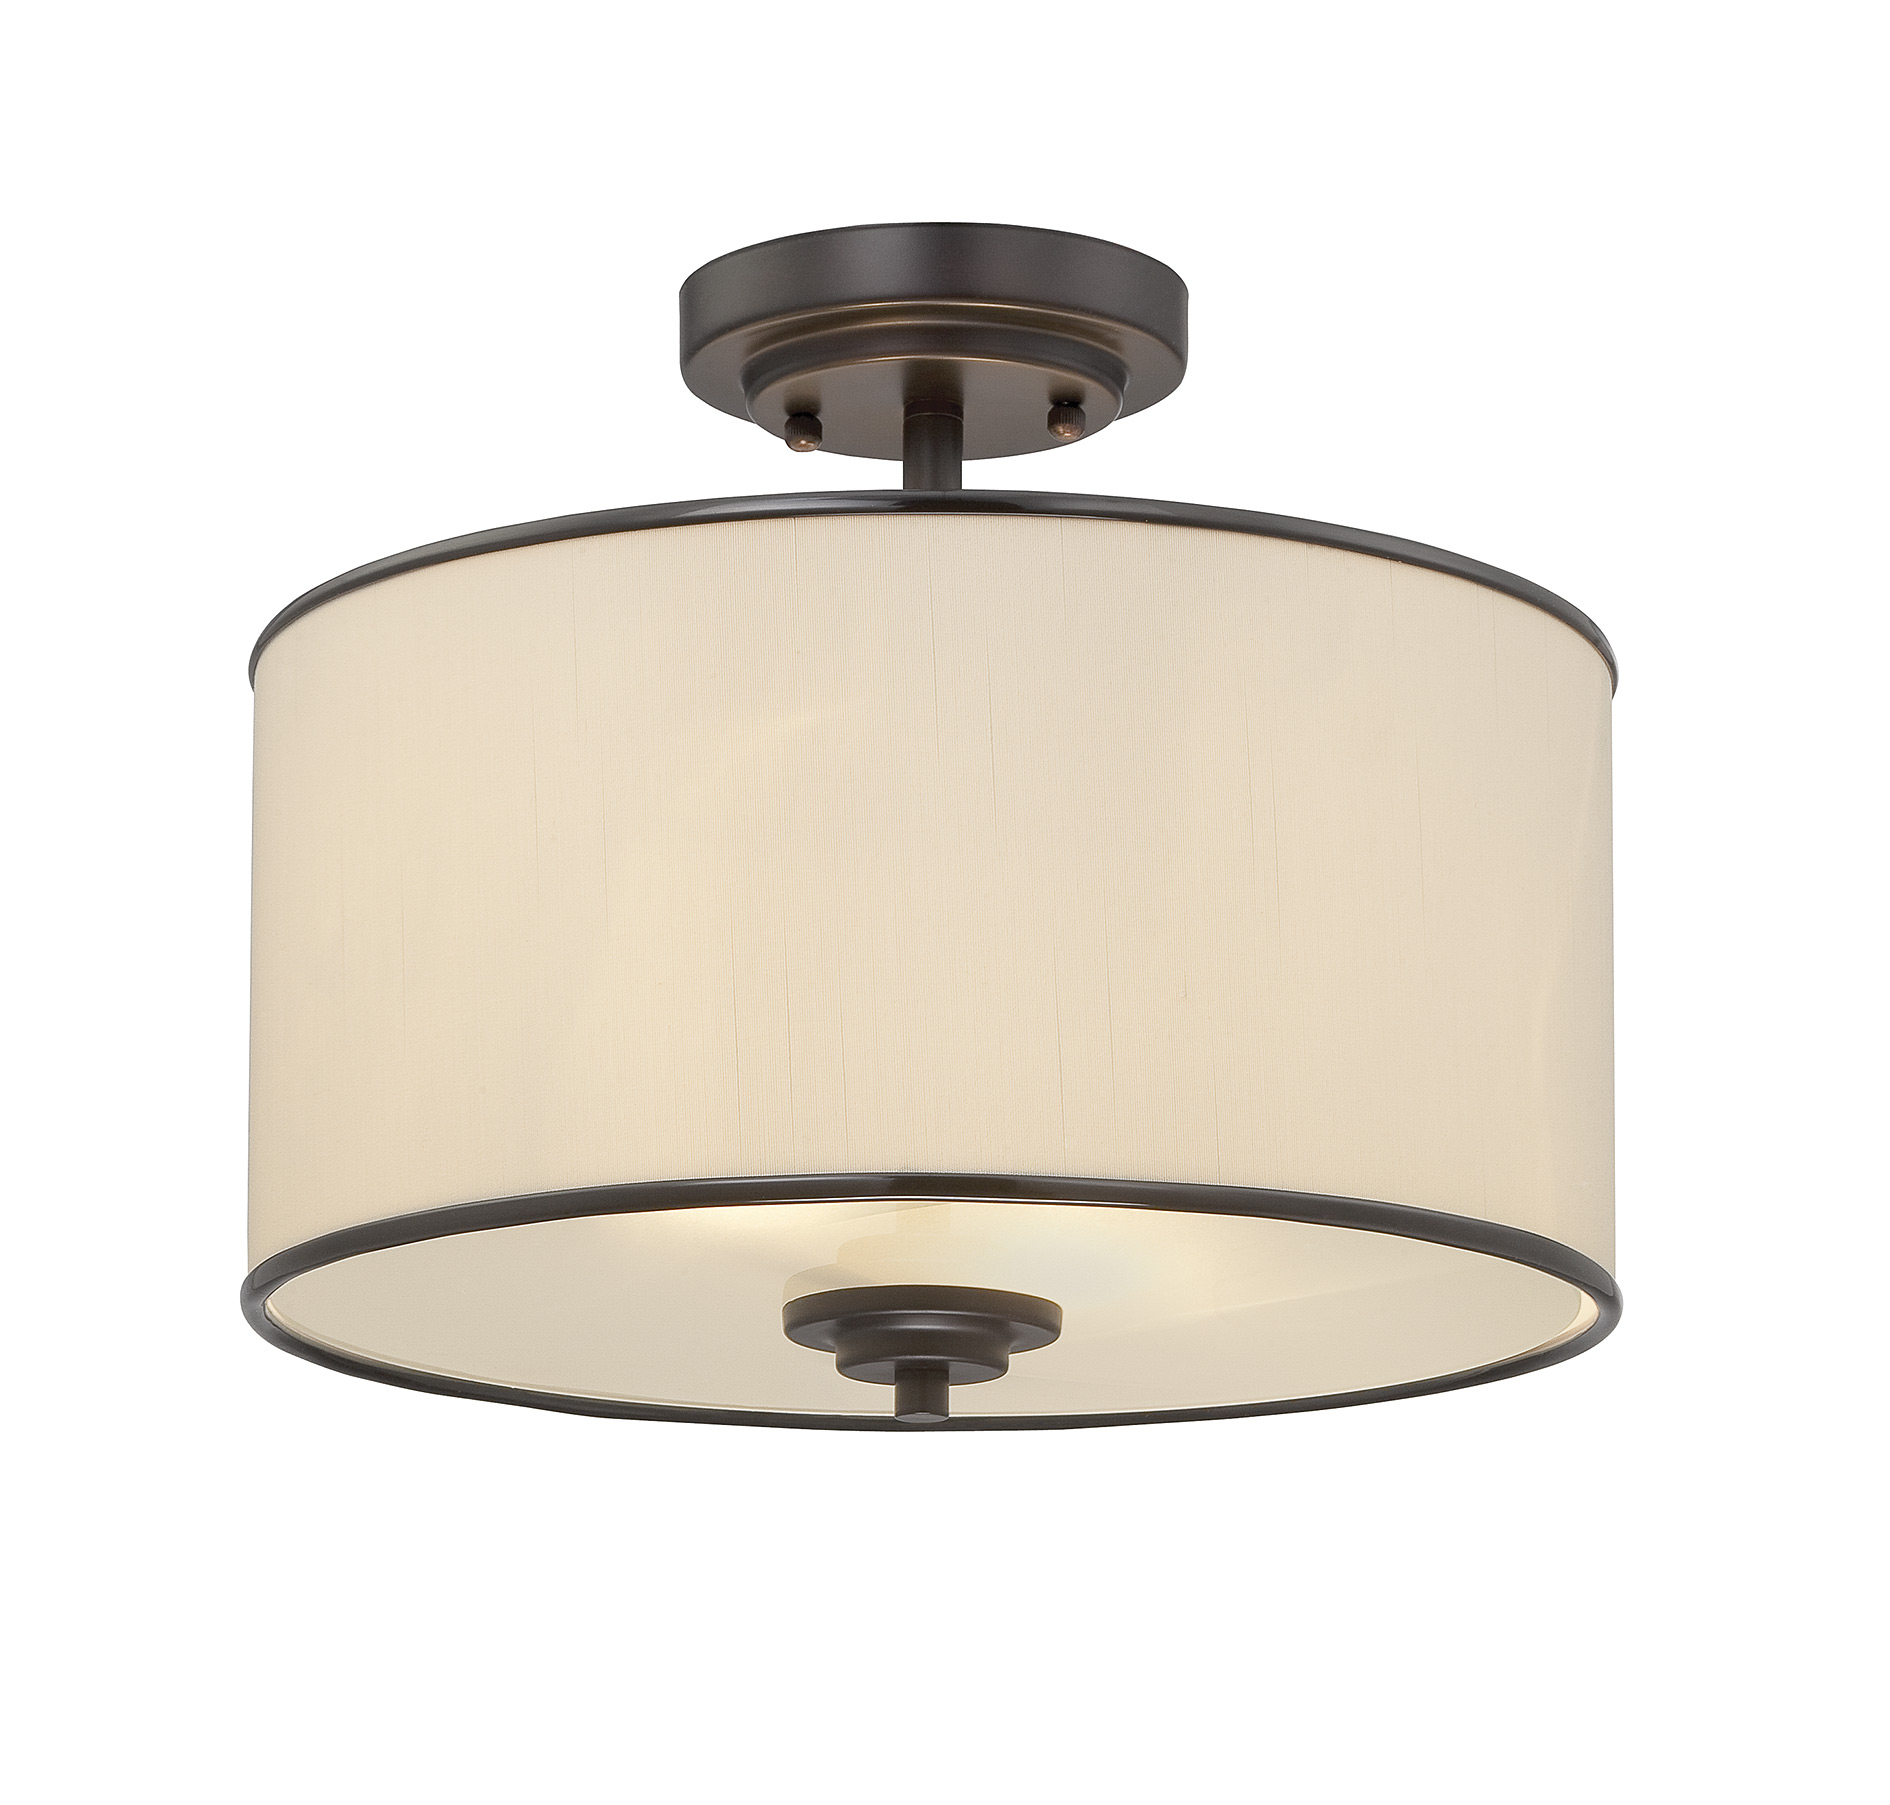 Best semi flush ceiling light for home lighting design with brushed nickel semi flush ceiling light